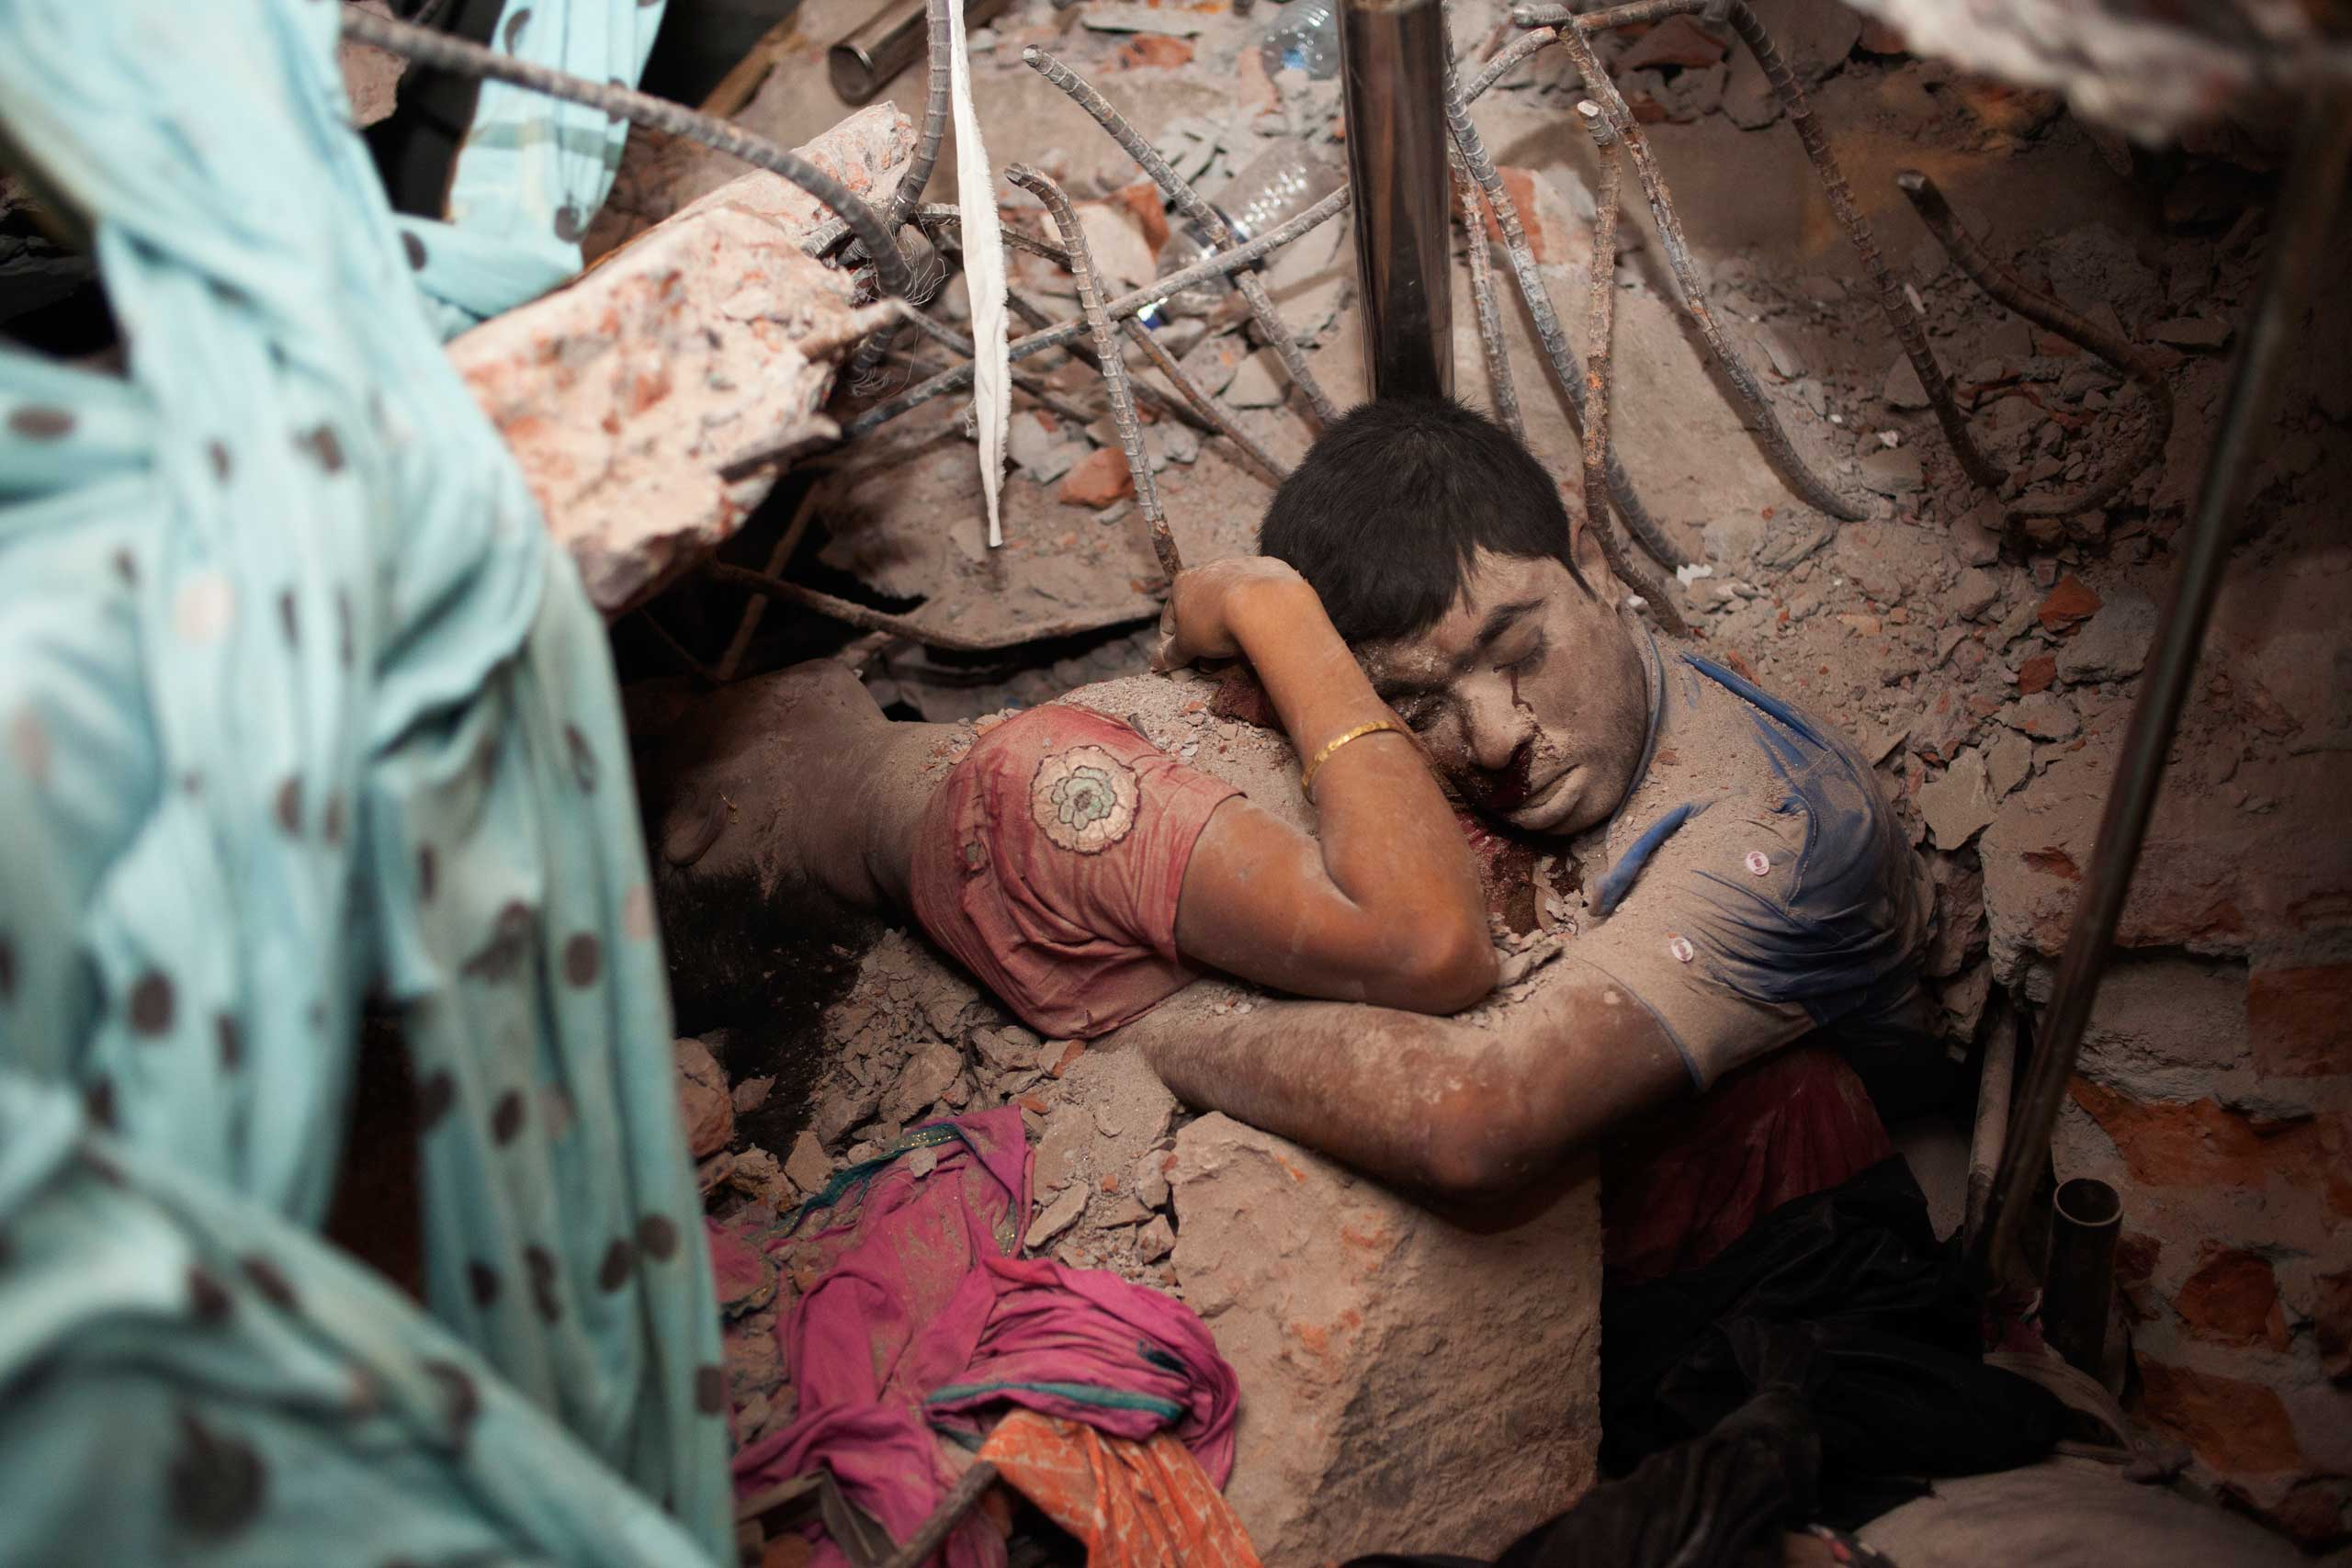 April 25, 2013. Two victims amid the rubble of a garment factory building collapse in Savar, near Dhaka, Bangladesh.